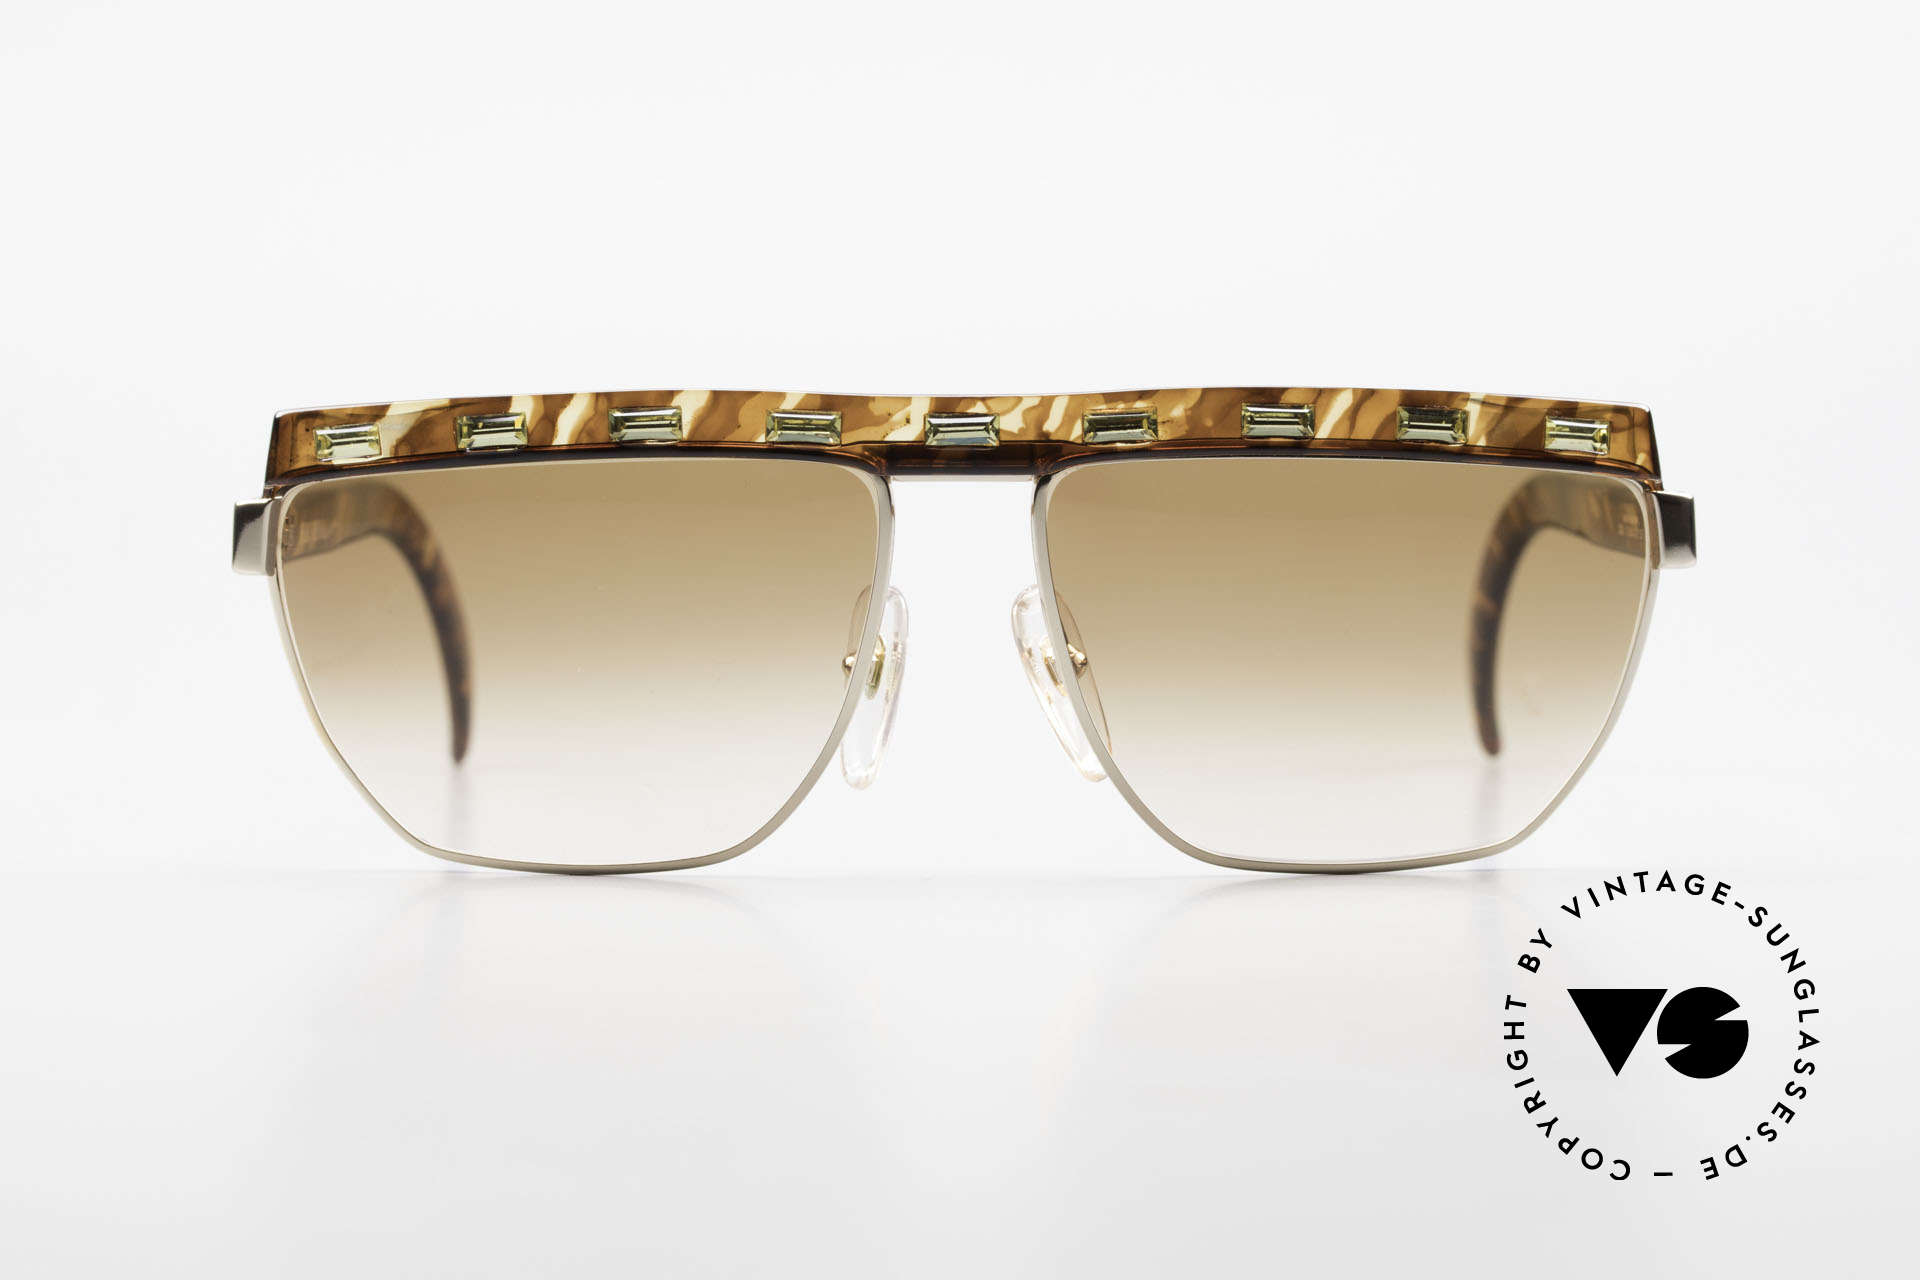 Paloma Picasso 3706 Ladies Gem Sunglasses 90's, Paloma is the youngest daughter of Pablo Picasso, Made for Women